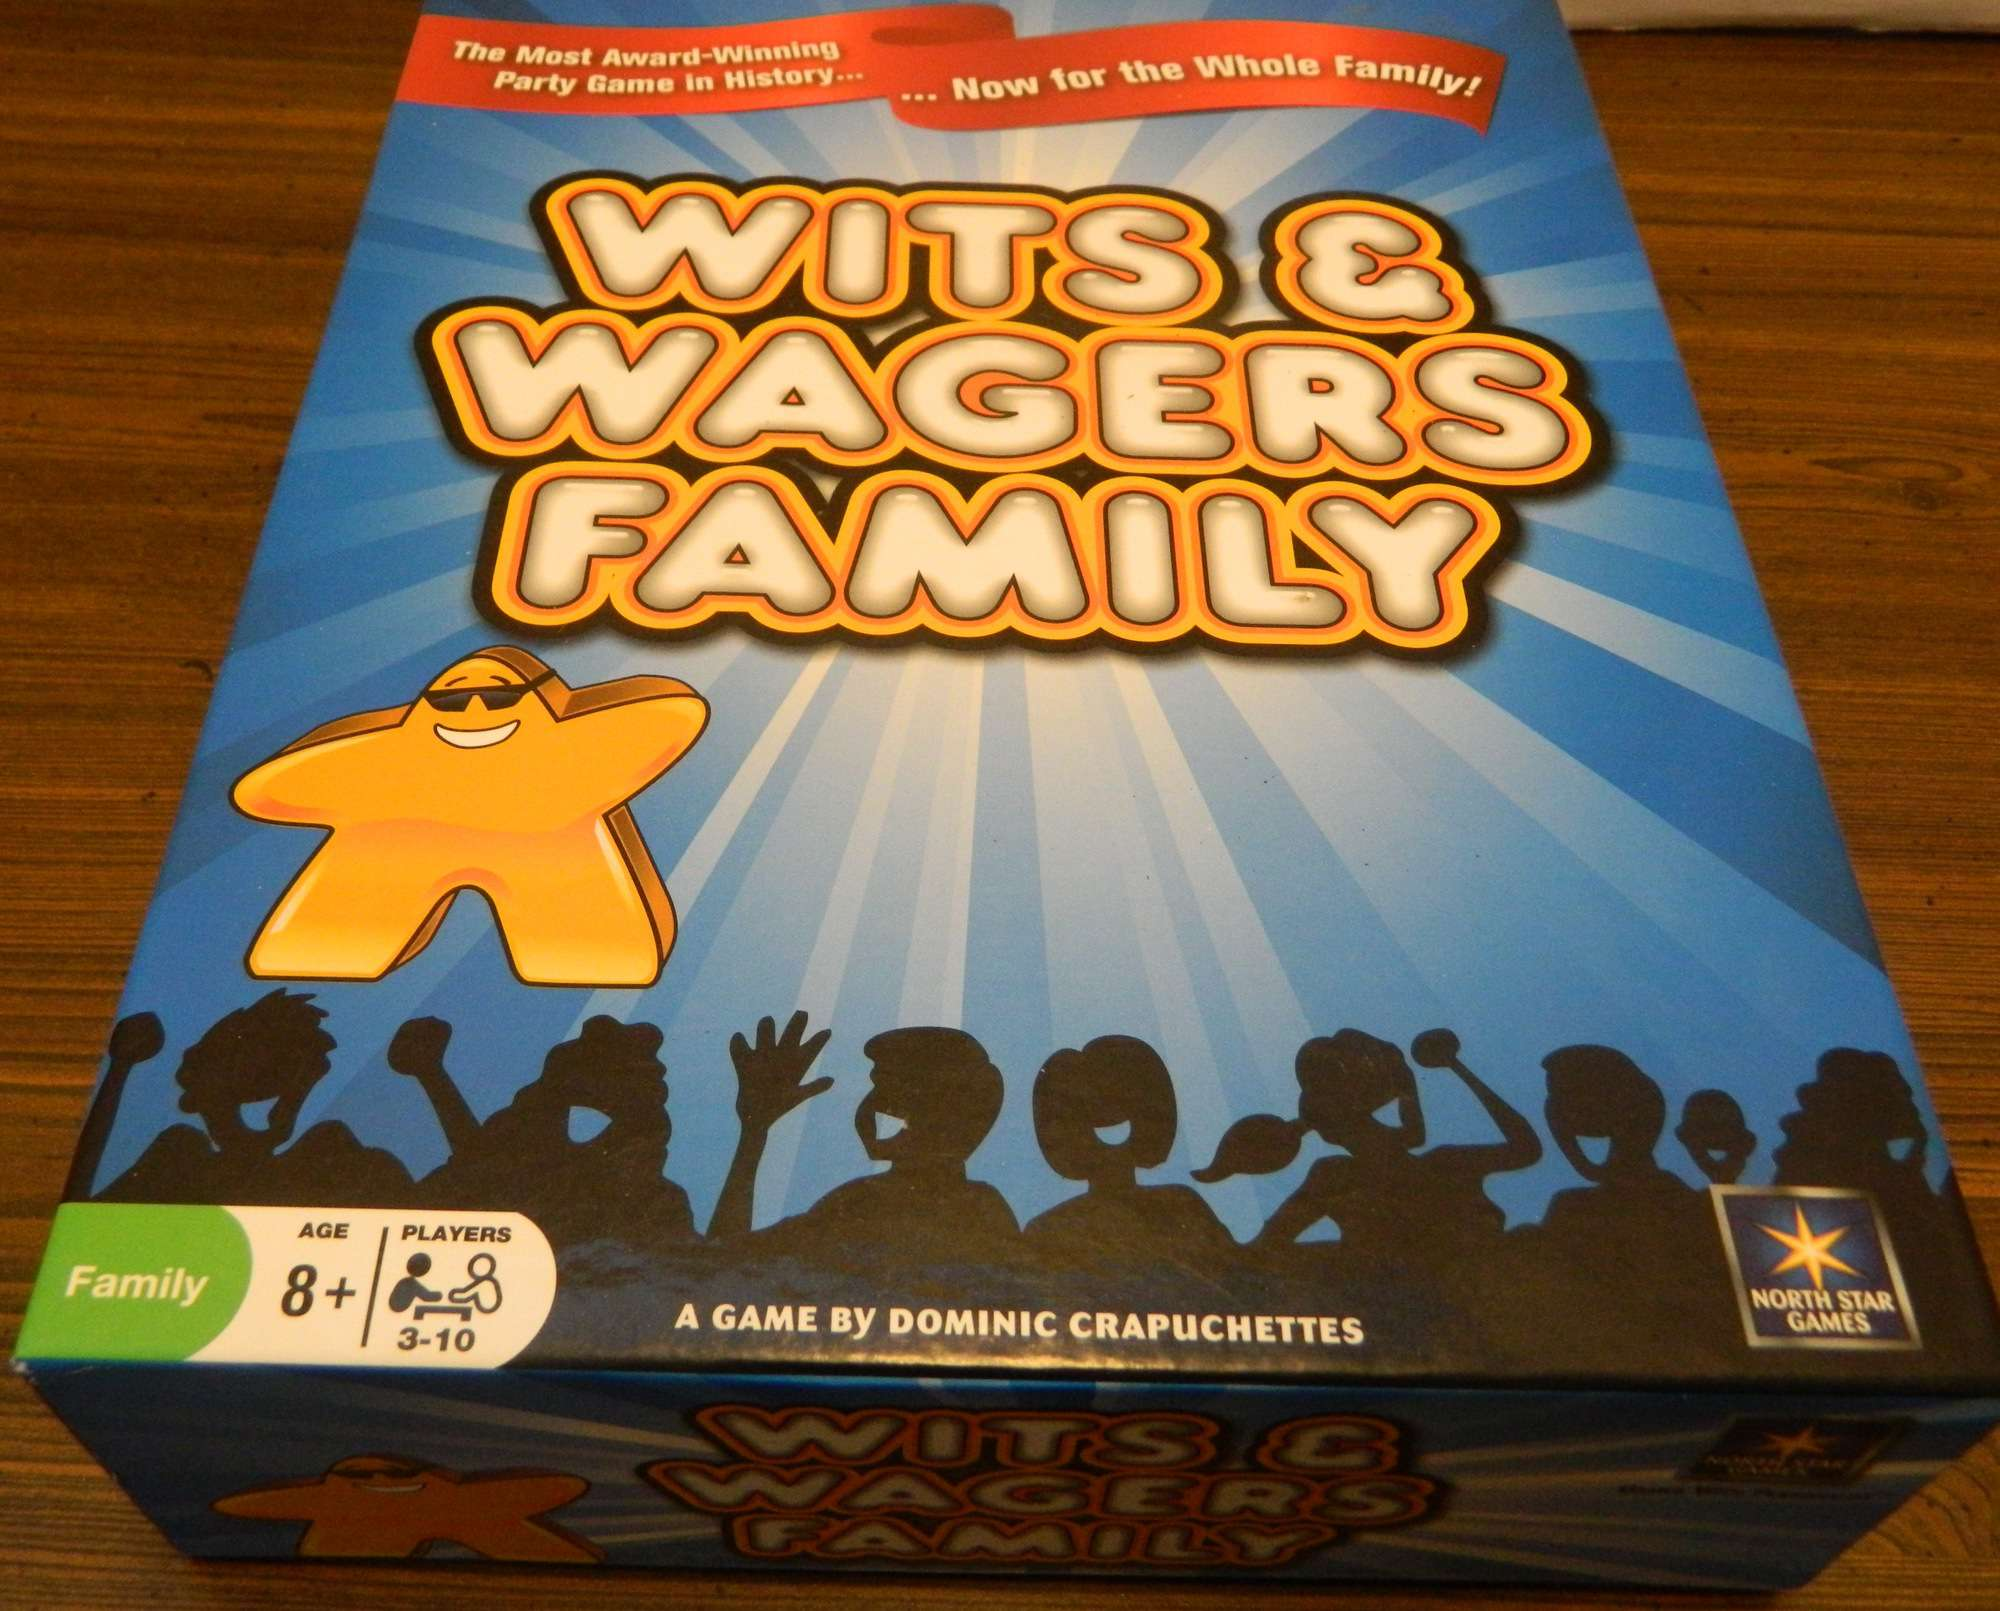 Box for Wits & Wagers Family